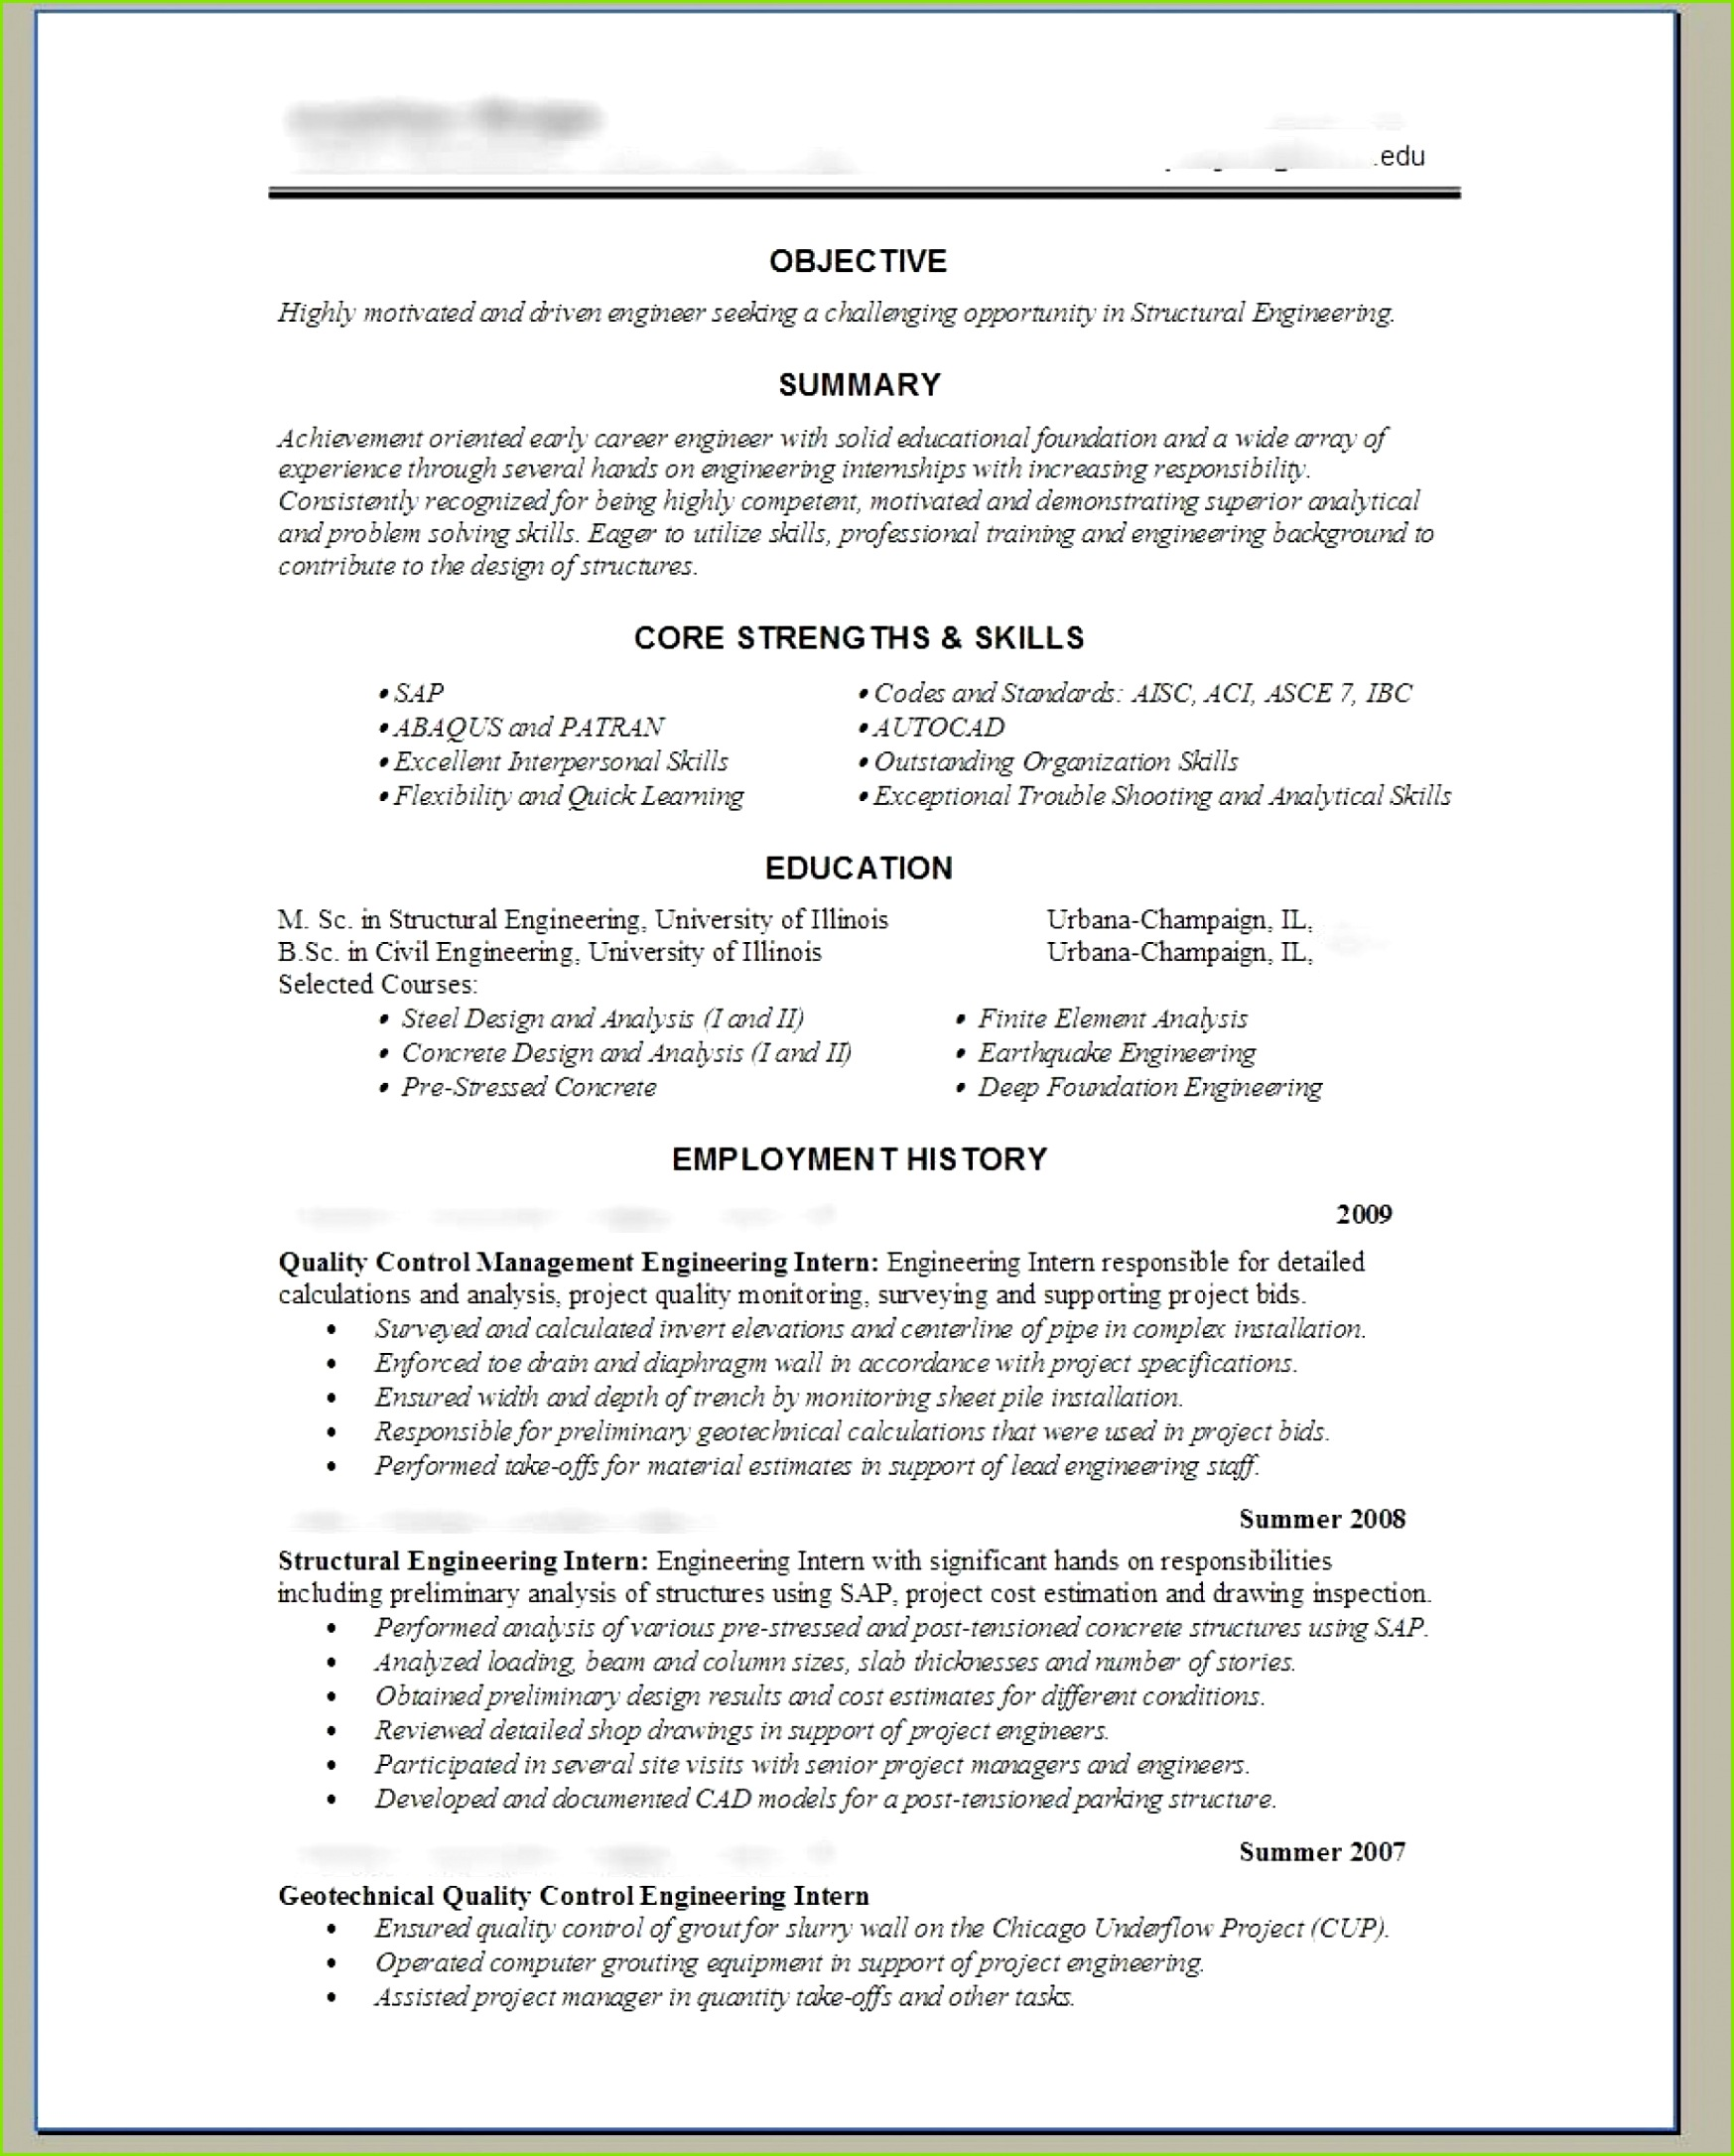 Free Resume Template Downloads Templates Beautiful Cv Pdf for Mac Schön Lebenslauf Vorlage Download Openoffice